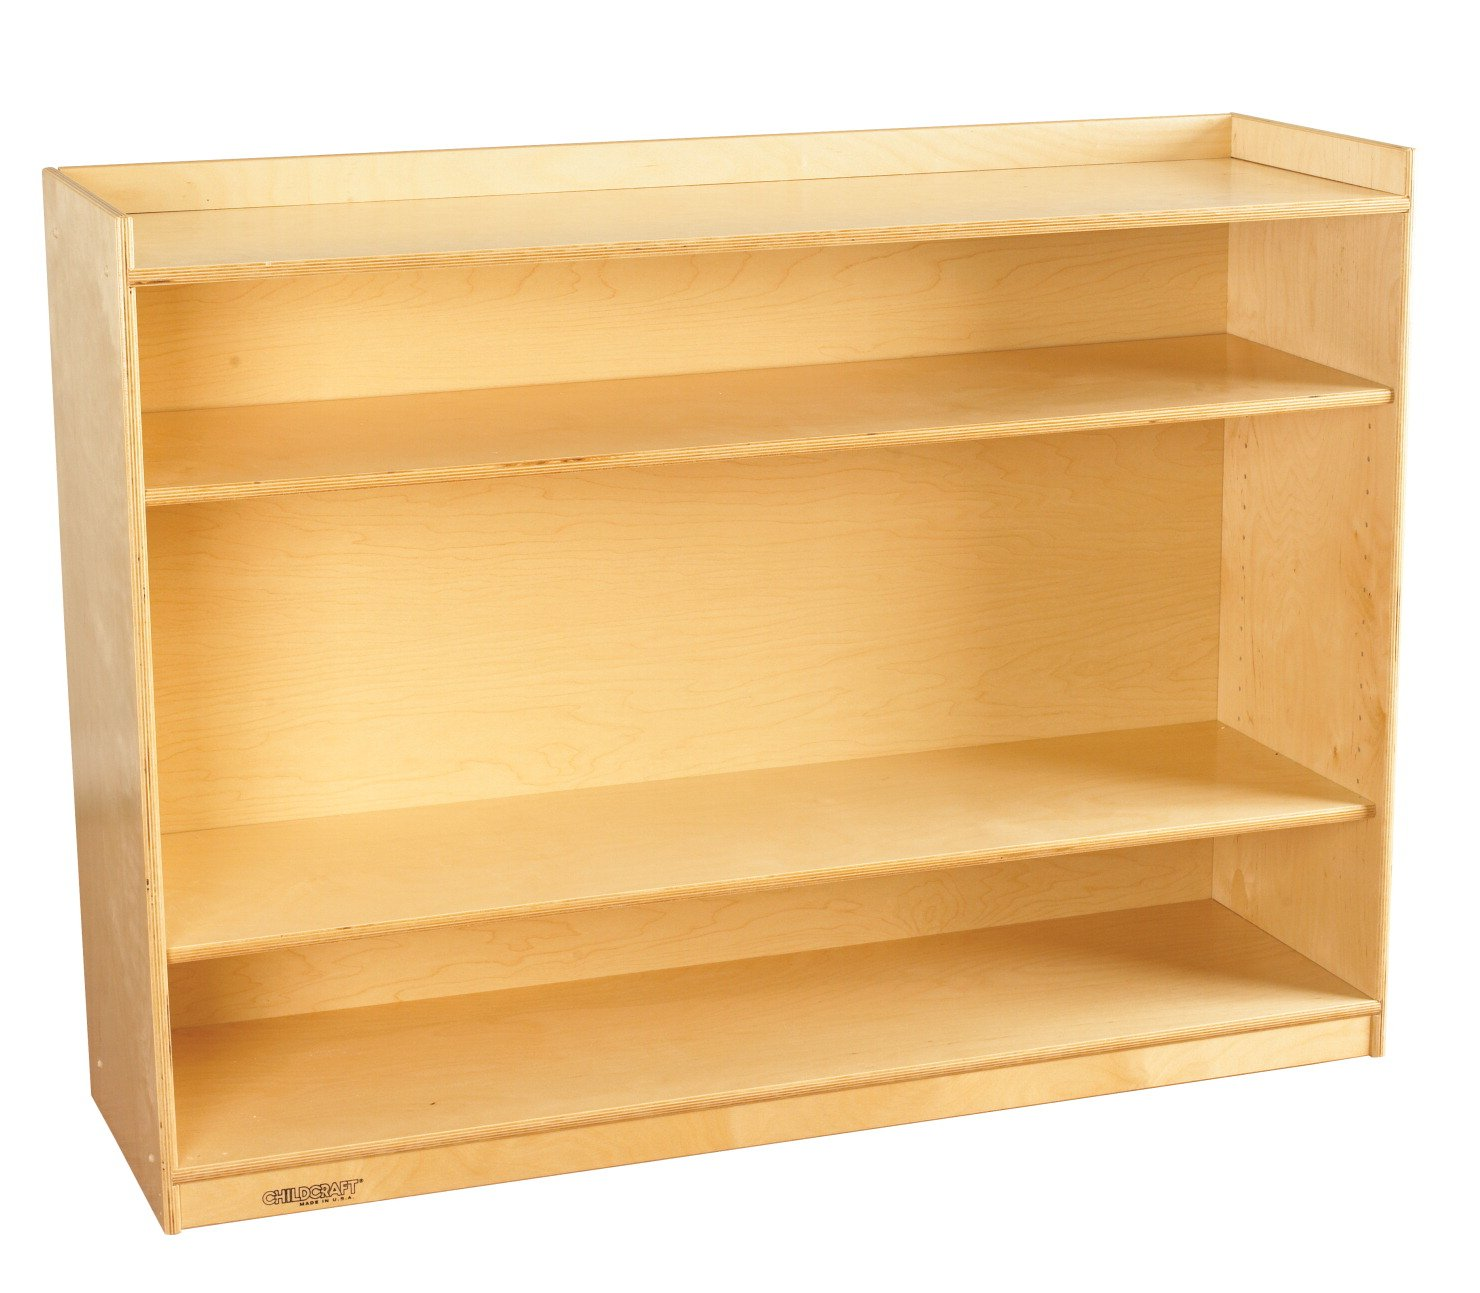 Childcraft 1464172 Adjustable Mobile Book Case with Lip, 2-Shelf, Wood, 47-3/4'' x 14-1/4'' x 36'', Natural Wood Tone